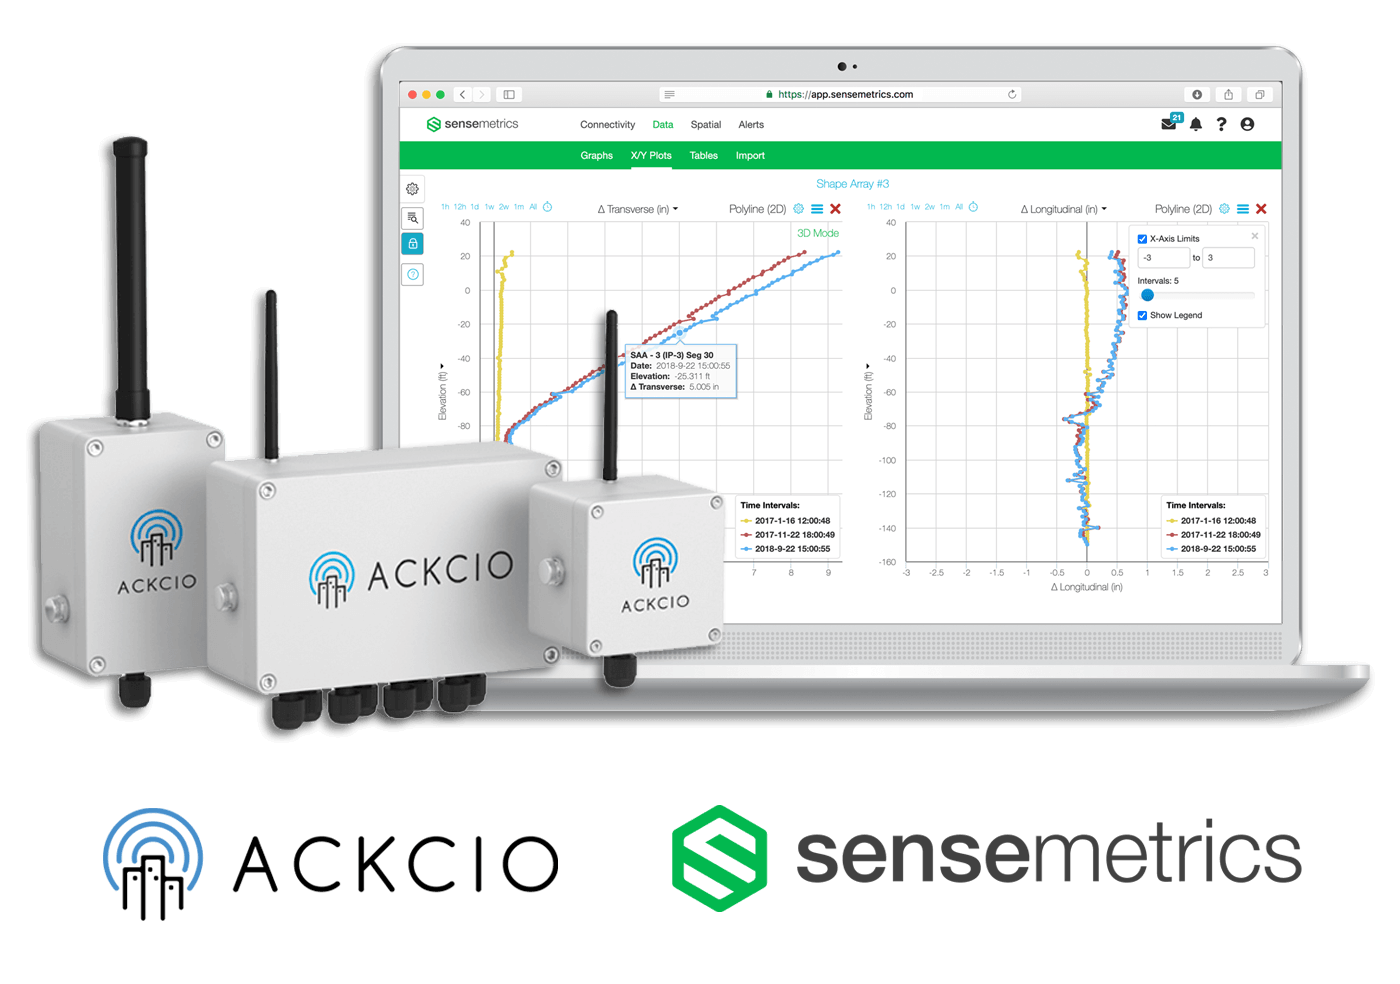 sensemetrics Joins Forces with Ackcio